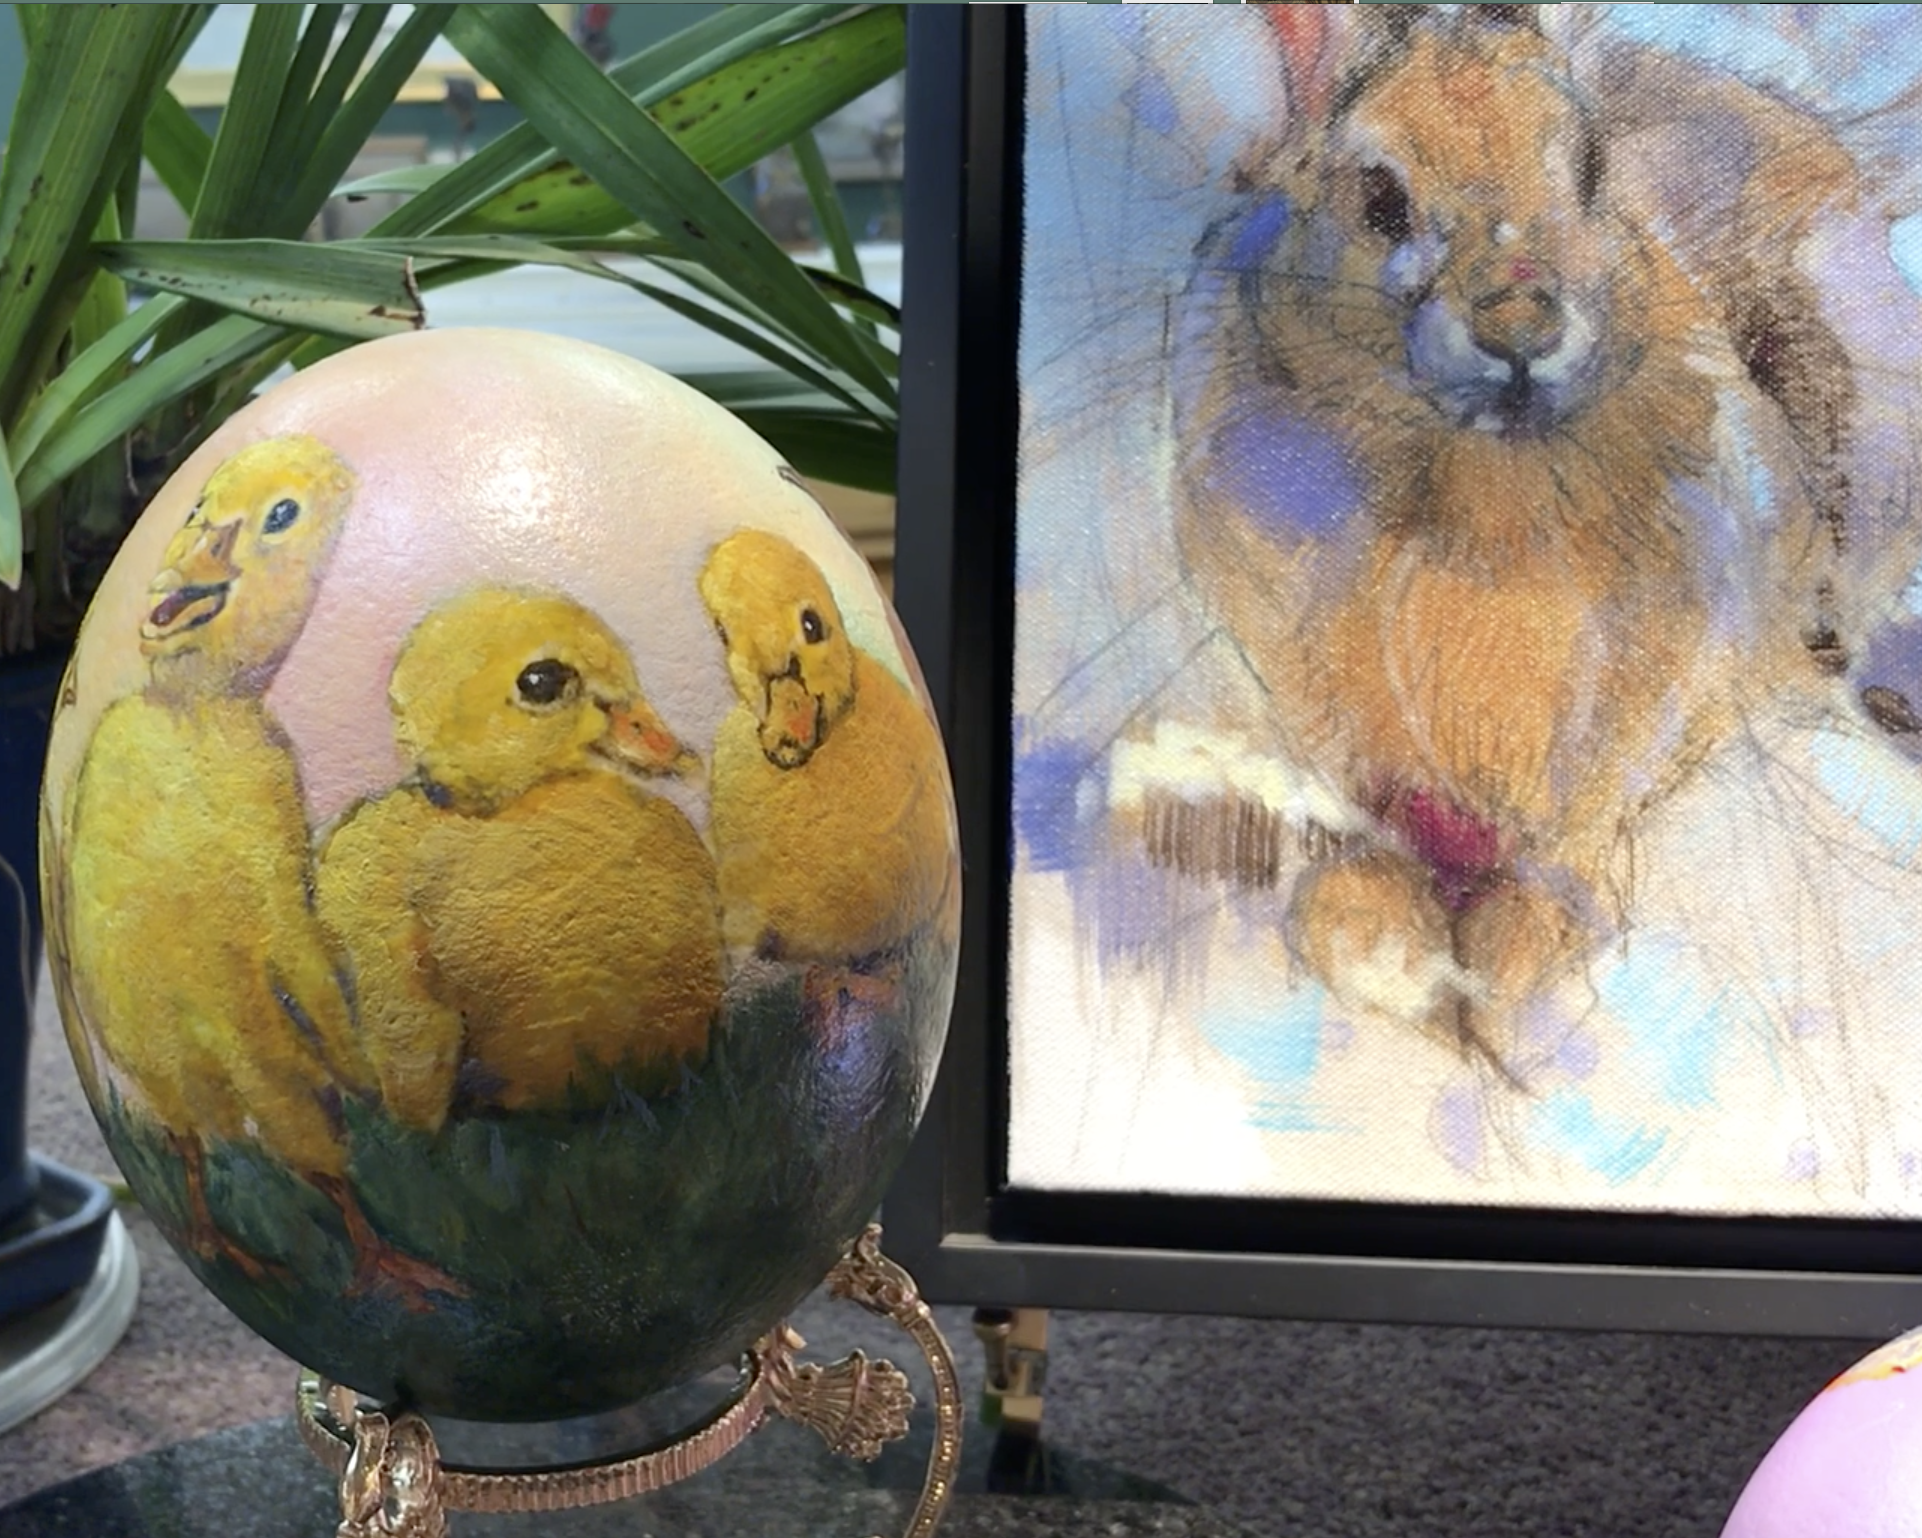 EASTER EGGS, BUNNIES, DUCKLINGS AND CHICKS